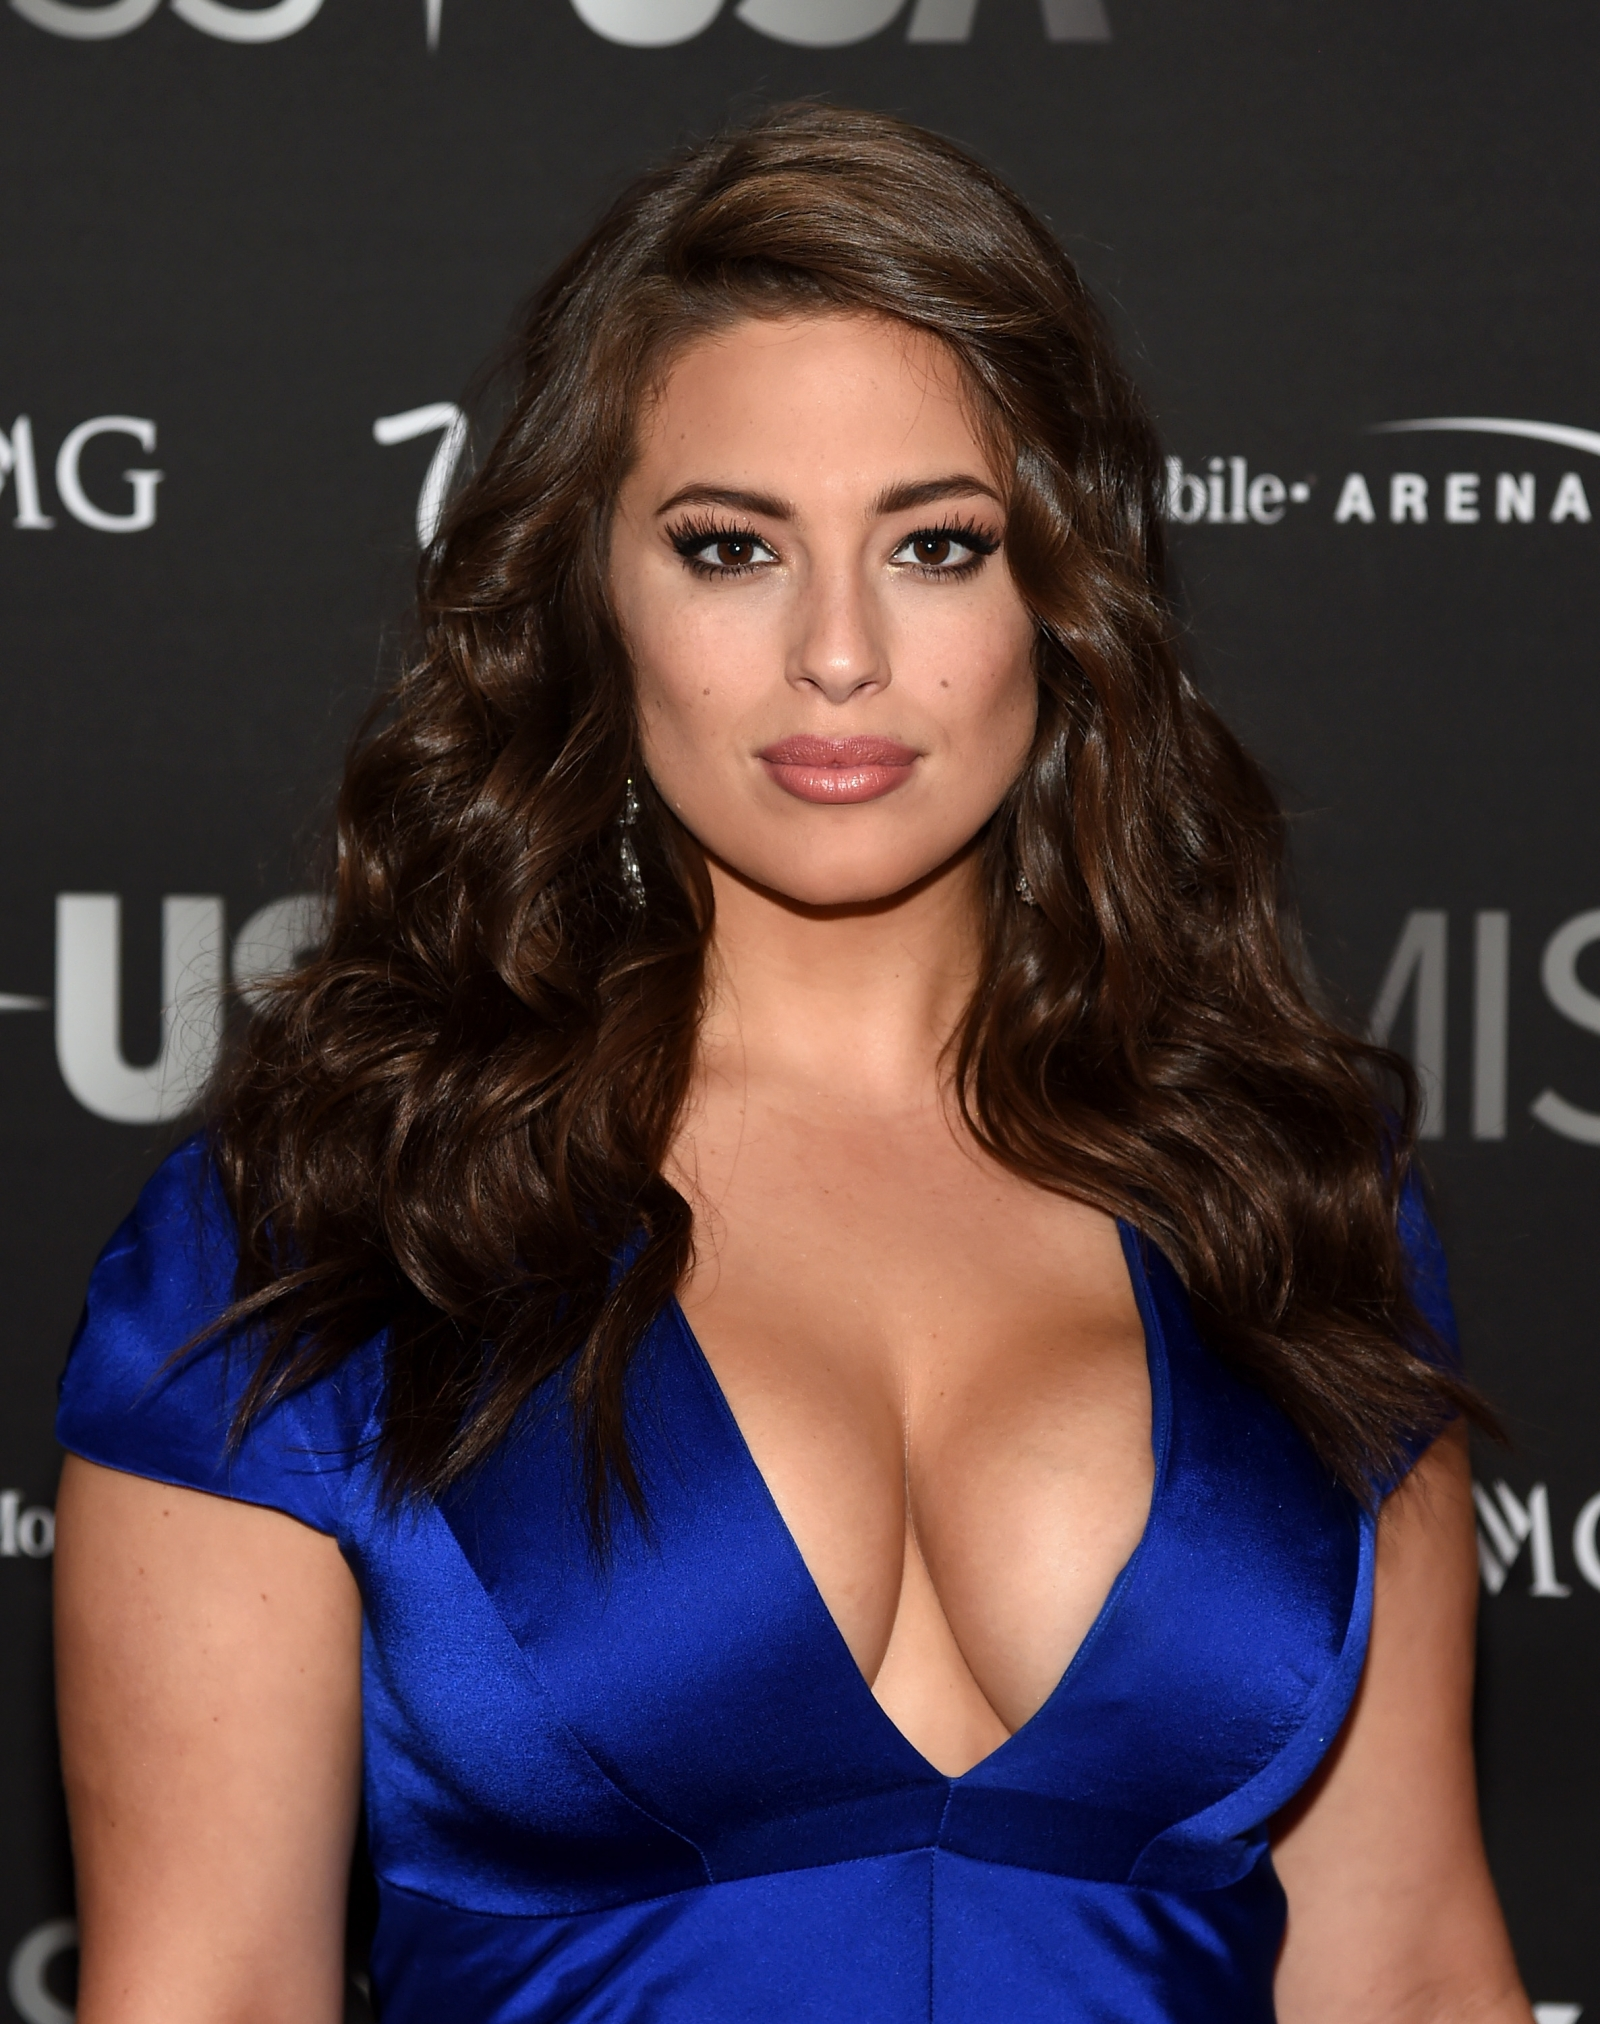 fans love plus-size model ashley graham's 'beautiful' naked photo